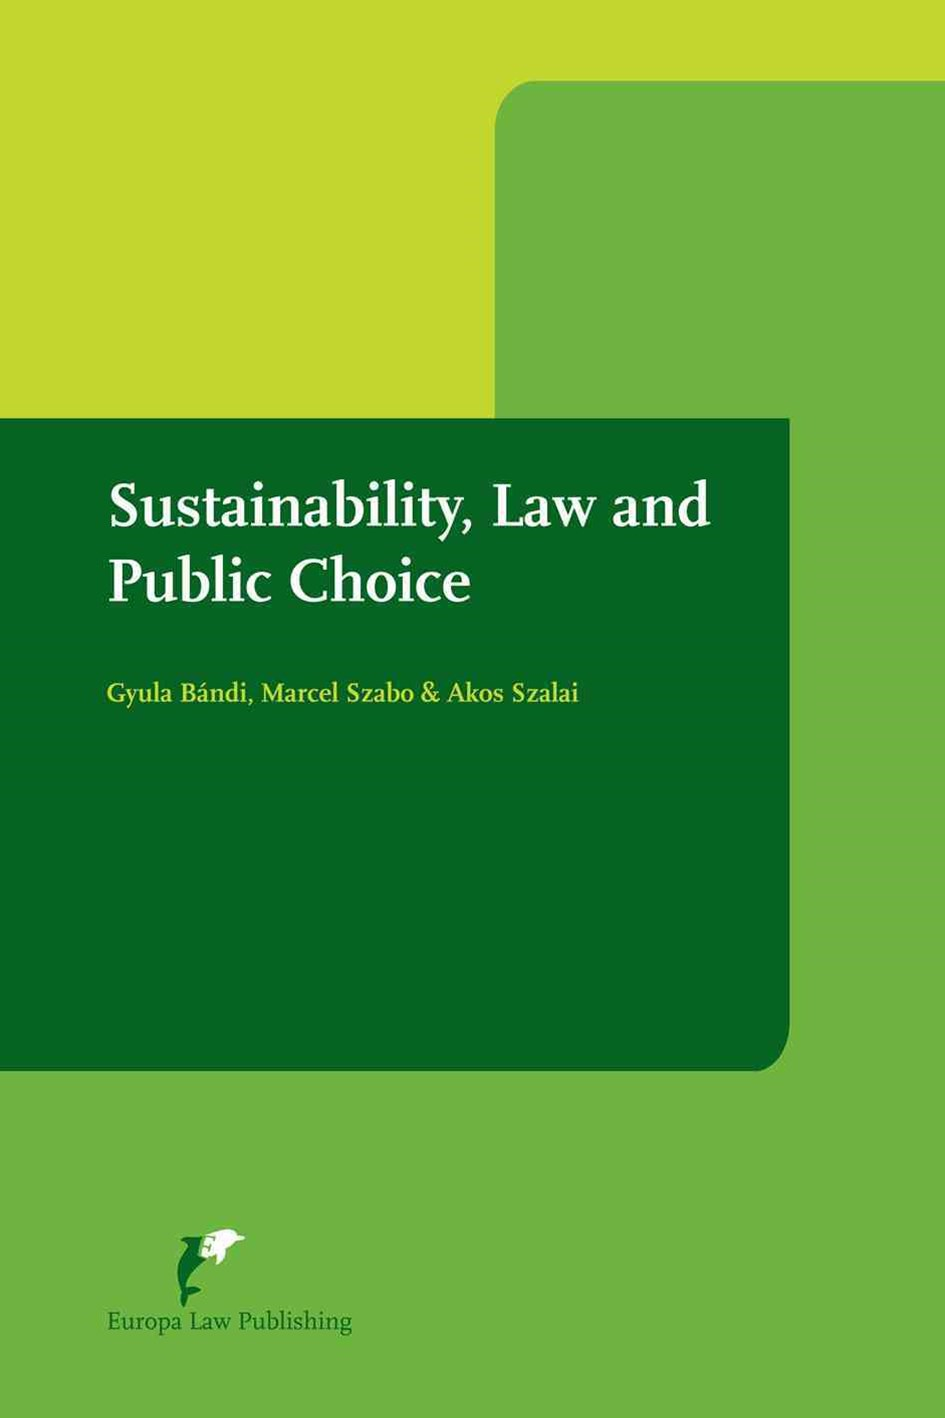 Sustainability, Law and Public Choice